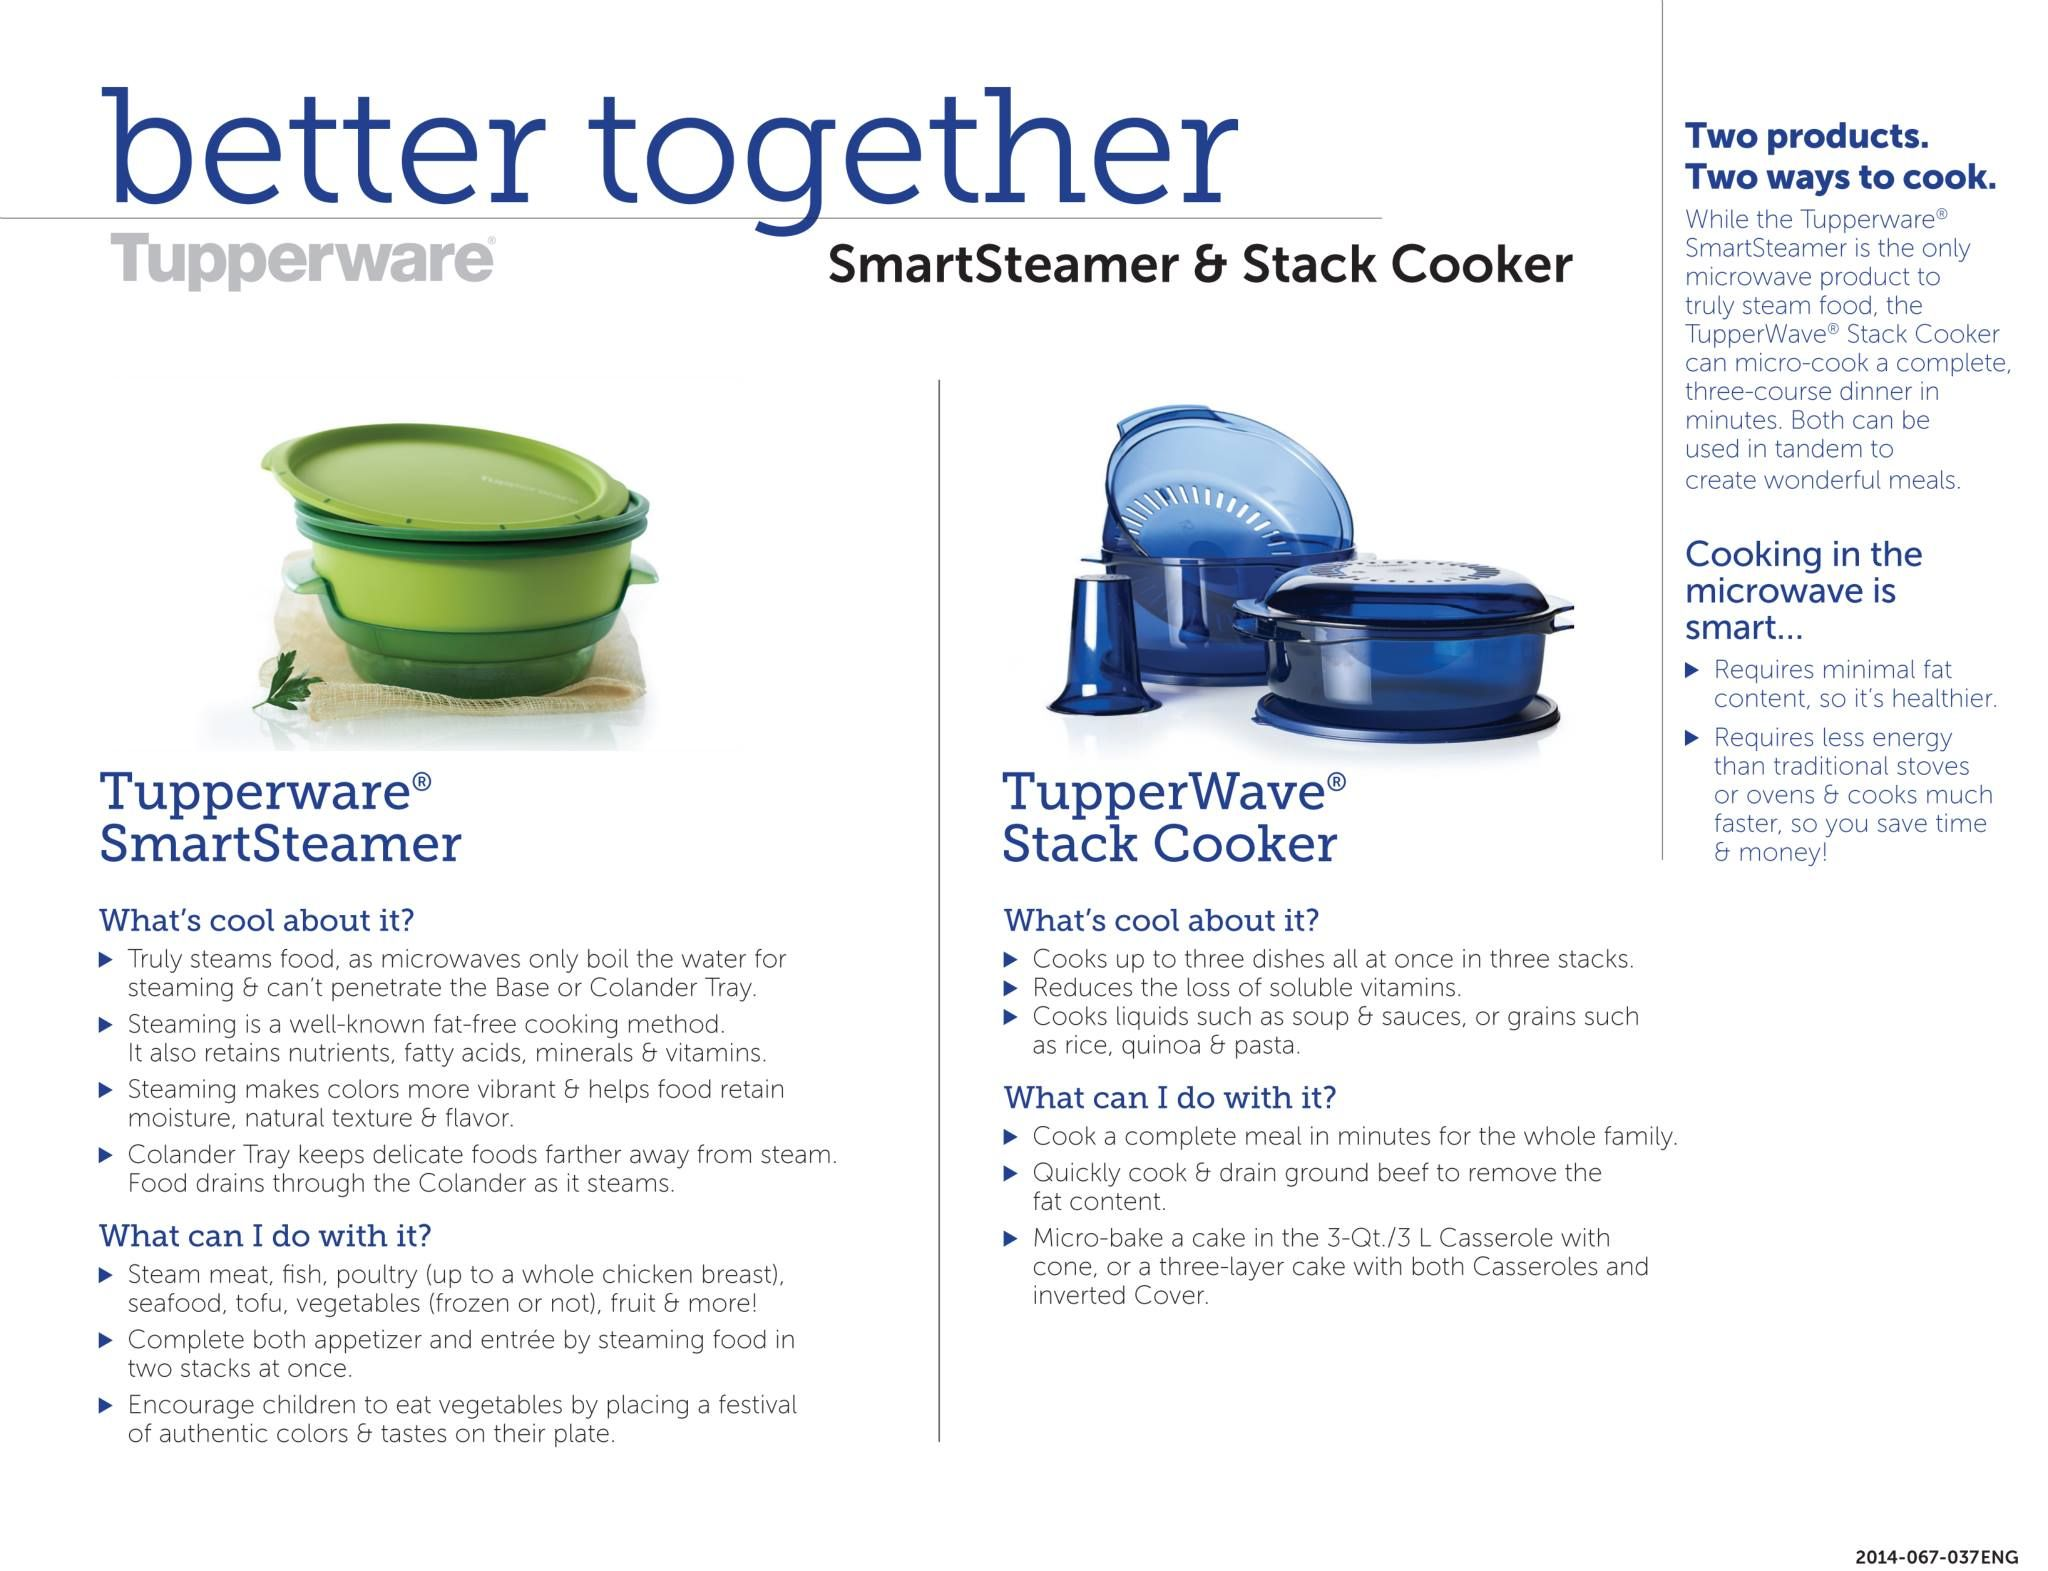 Wondering what the difference between the Smart Steamer